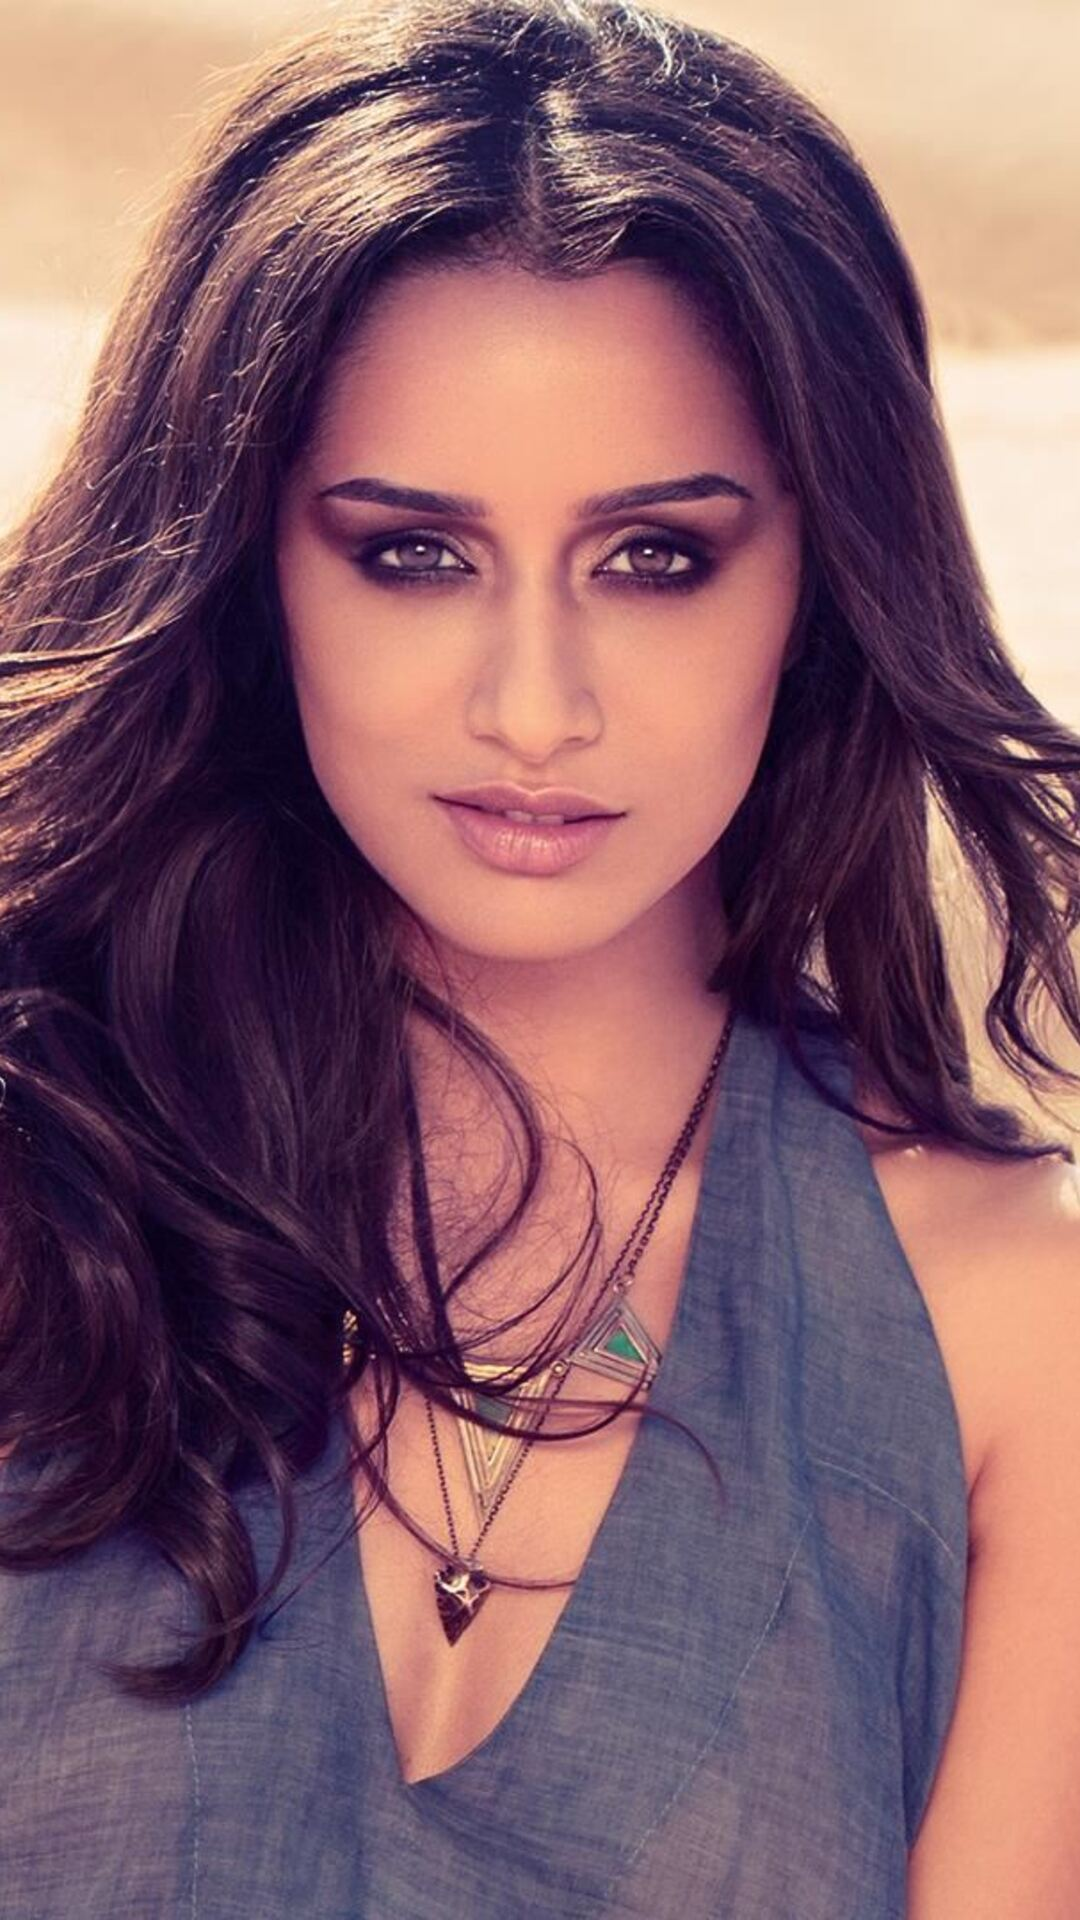 shraddha kapoor 1080x1920 resolution wallpapers iphone 7,6s,6 plus